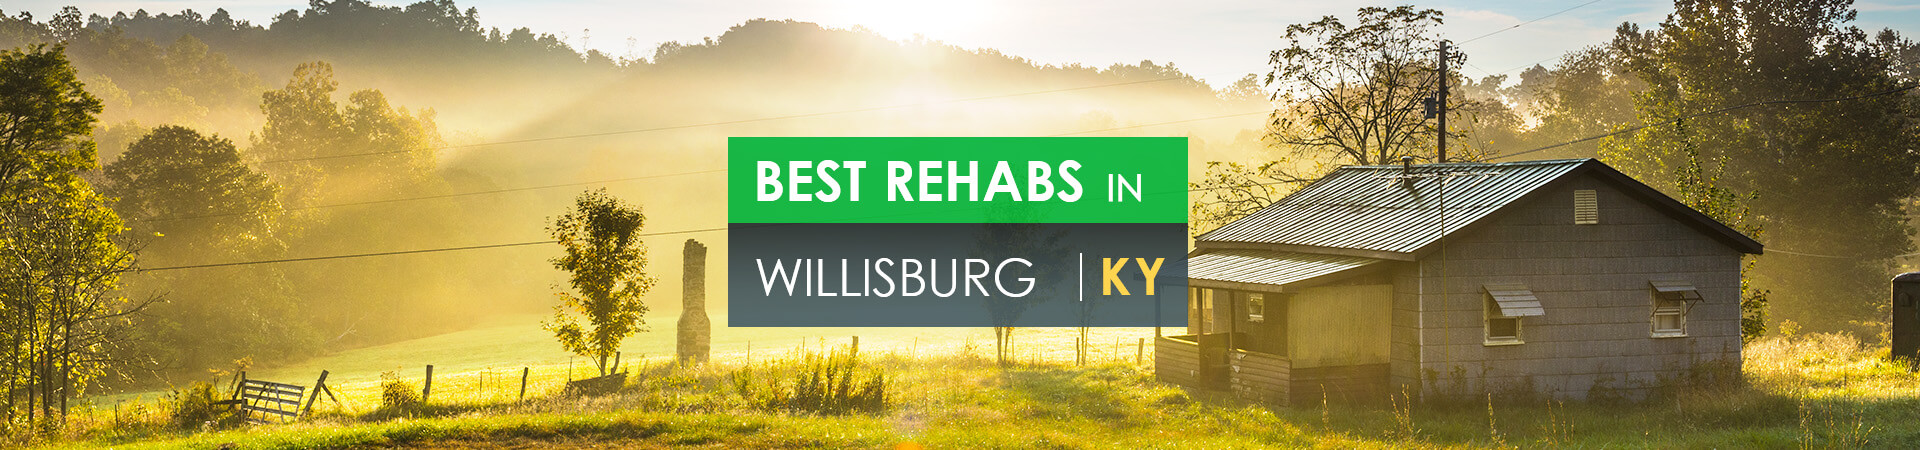 Best rehabs in Willisburg, KY